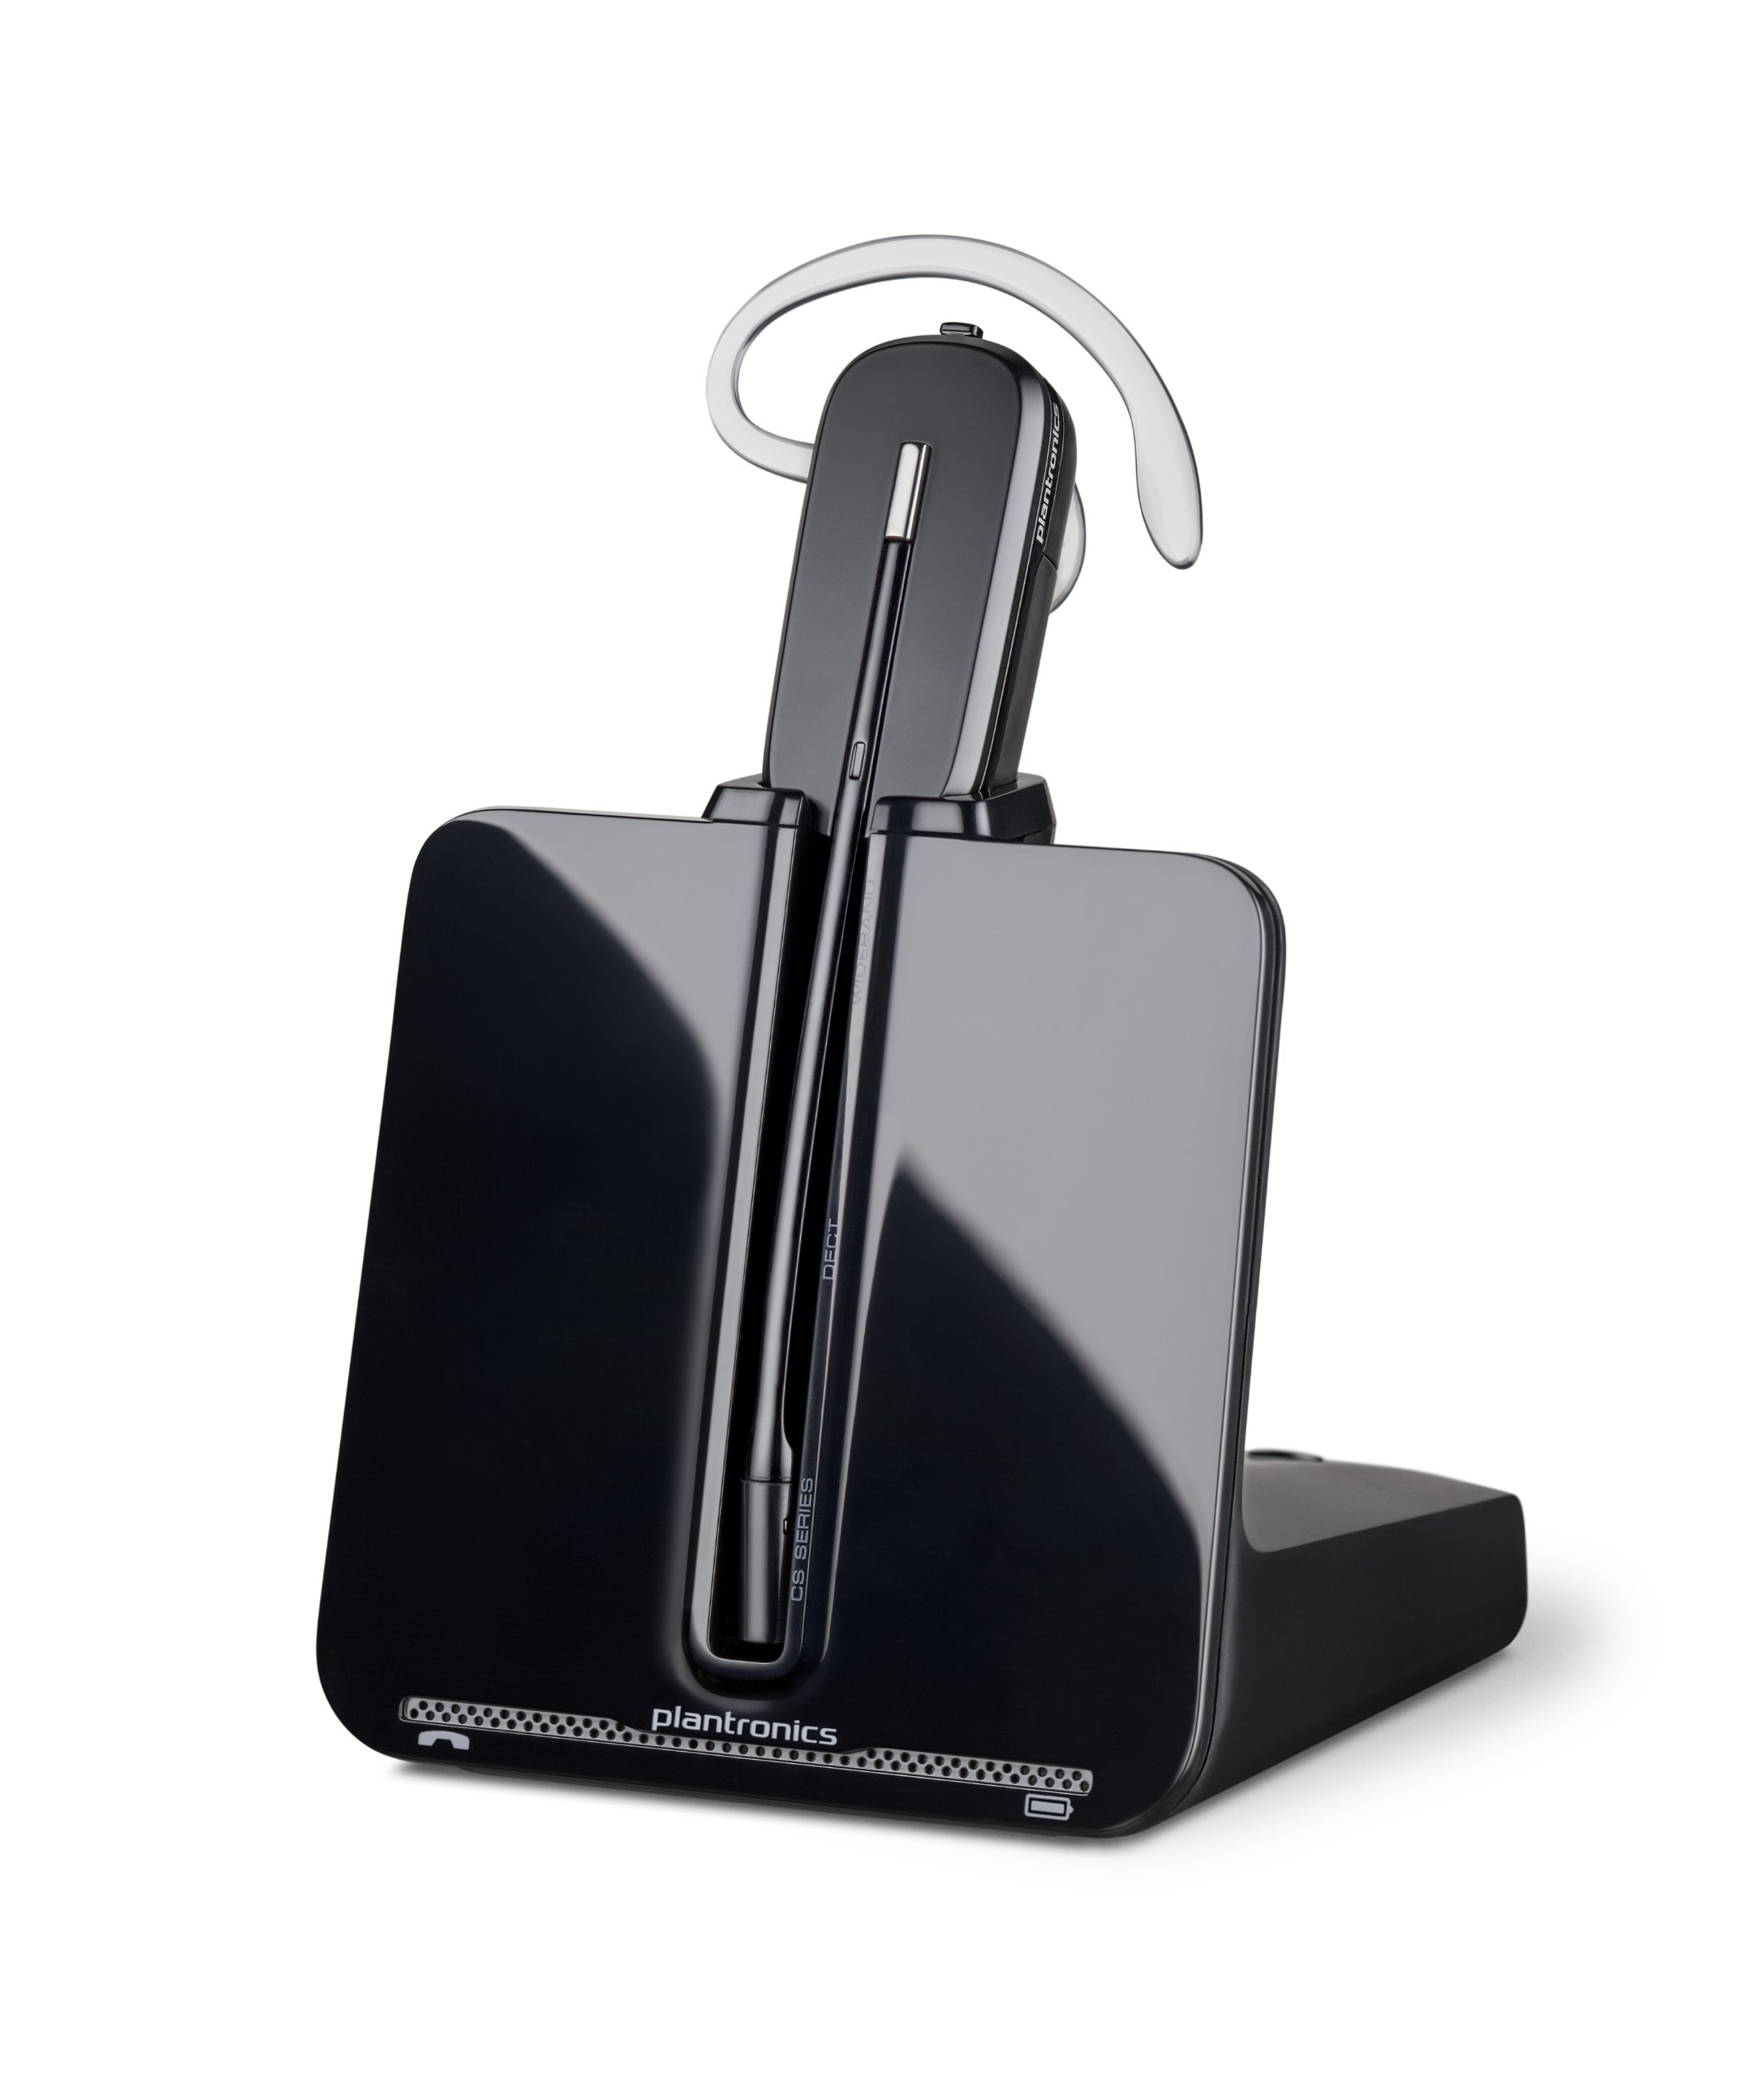 Plantronics Cs540 Office Wireless Headset With Handset Lifter 8